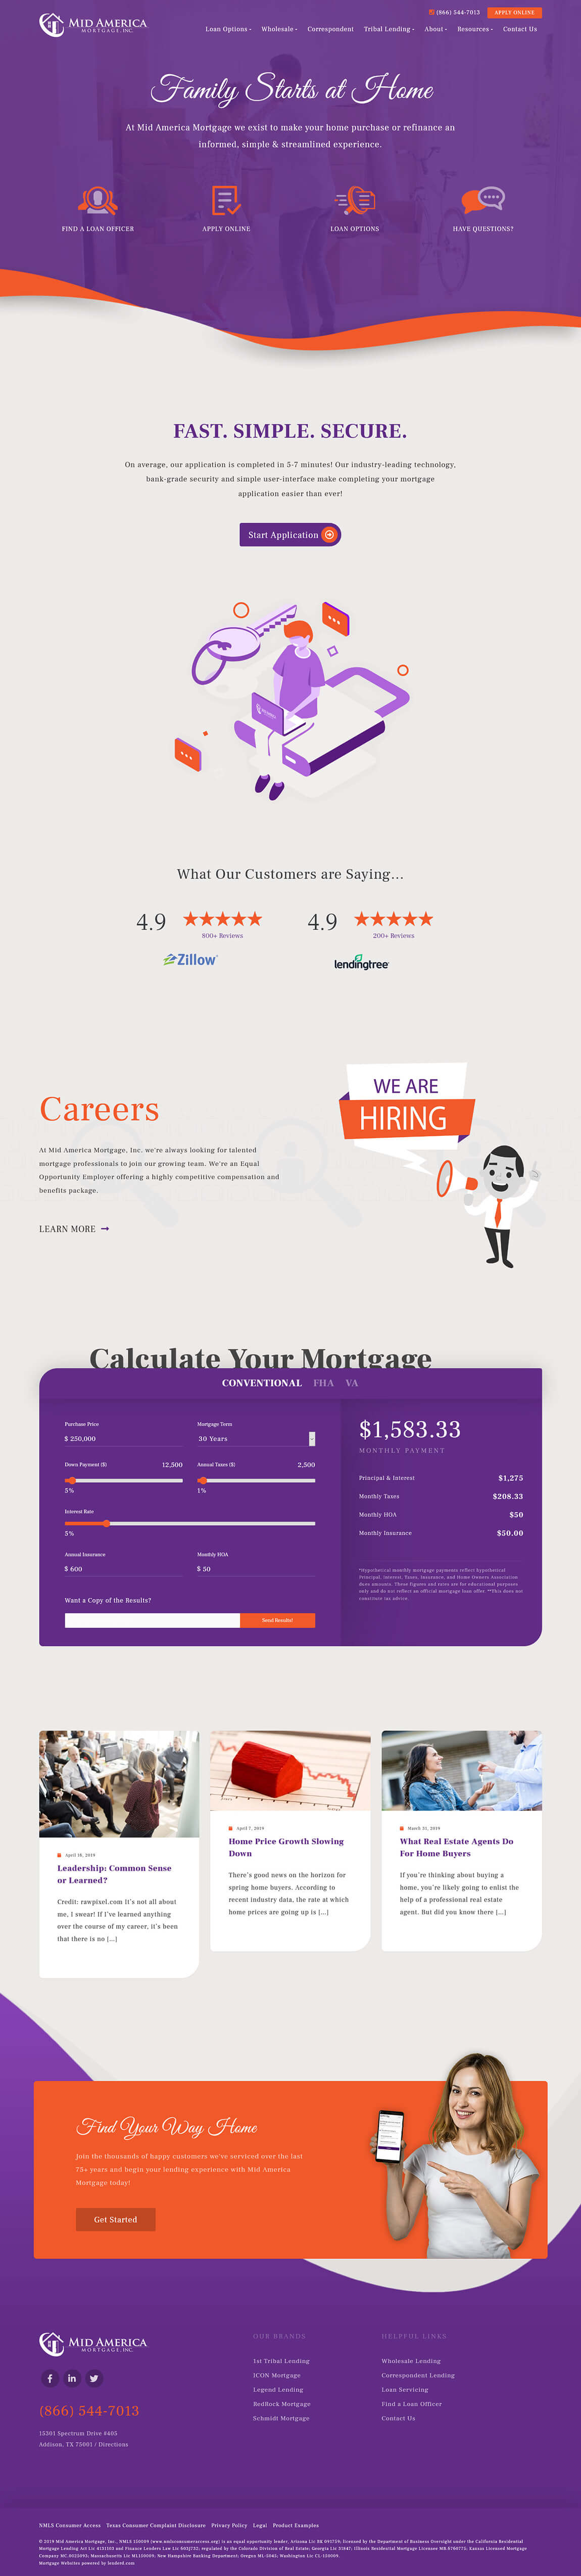 Mid America Mortgage Website Design